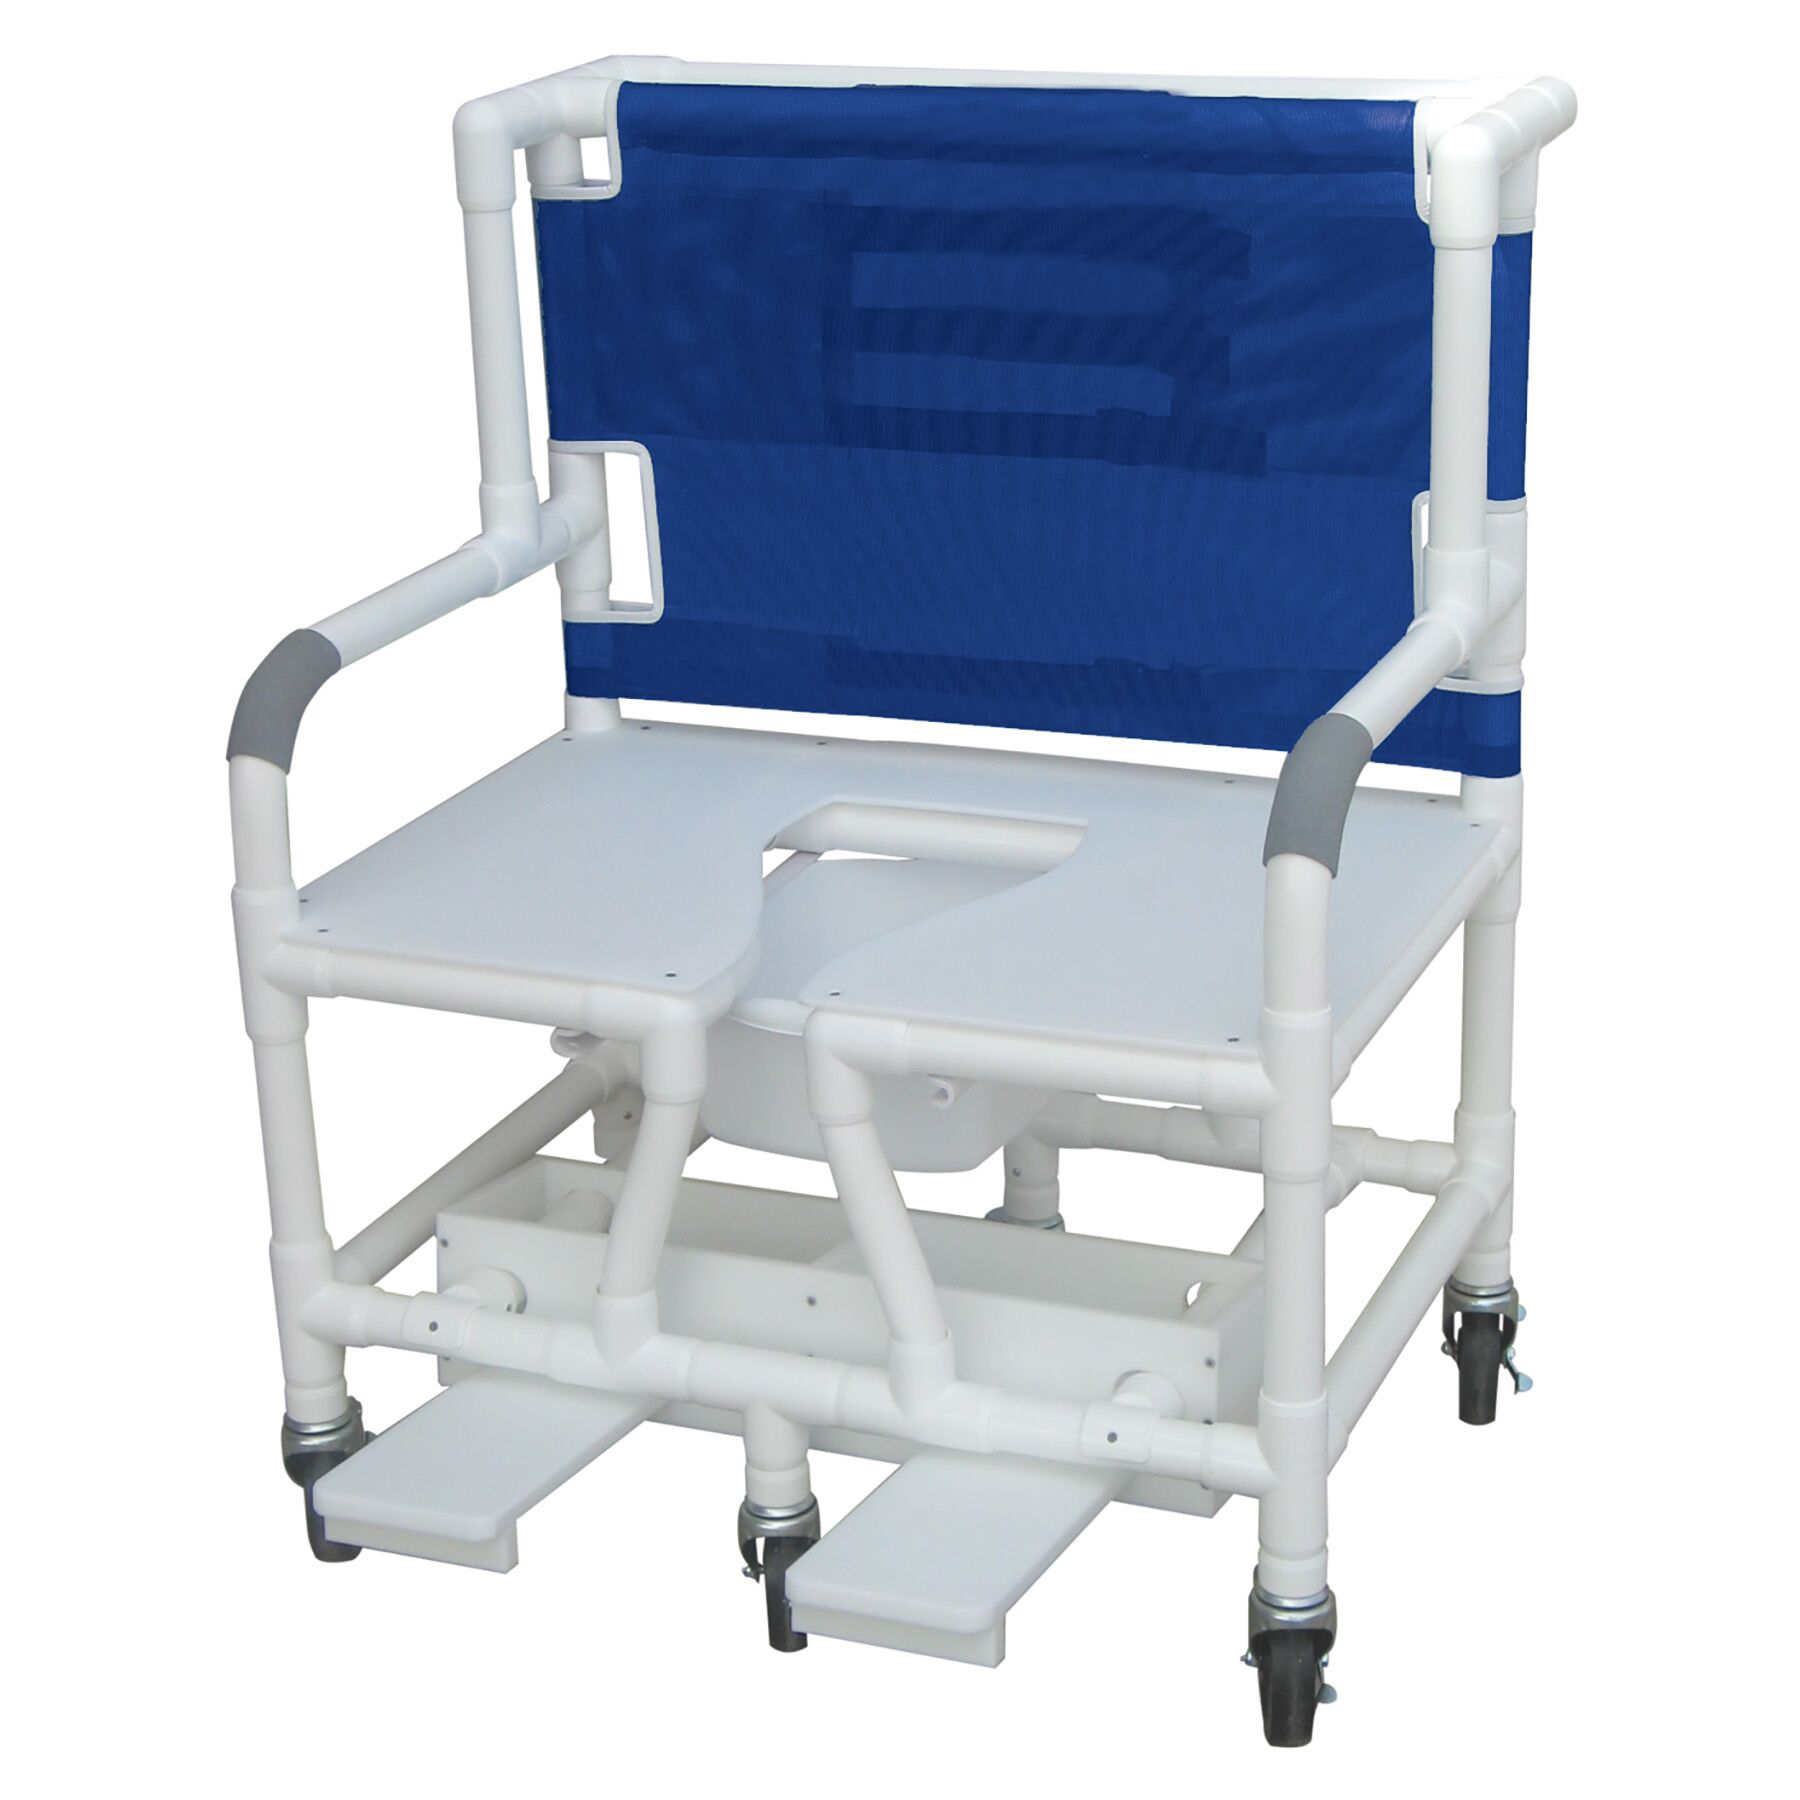 30″ Bariatric Shower Chair W/ Full Support Seat And Commode Opening